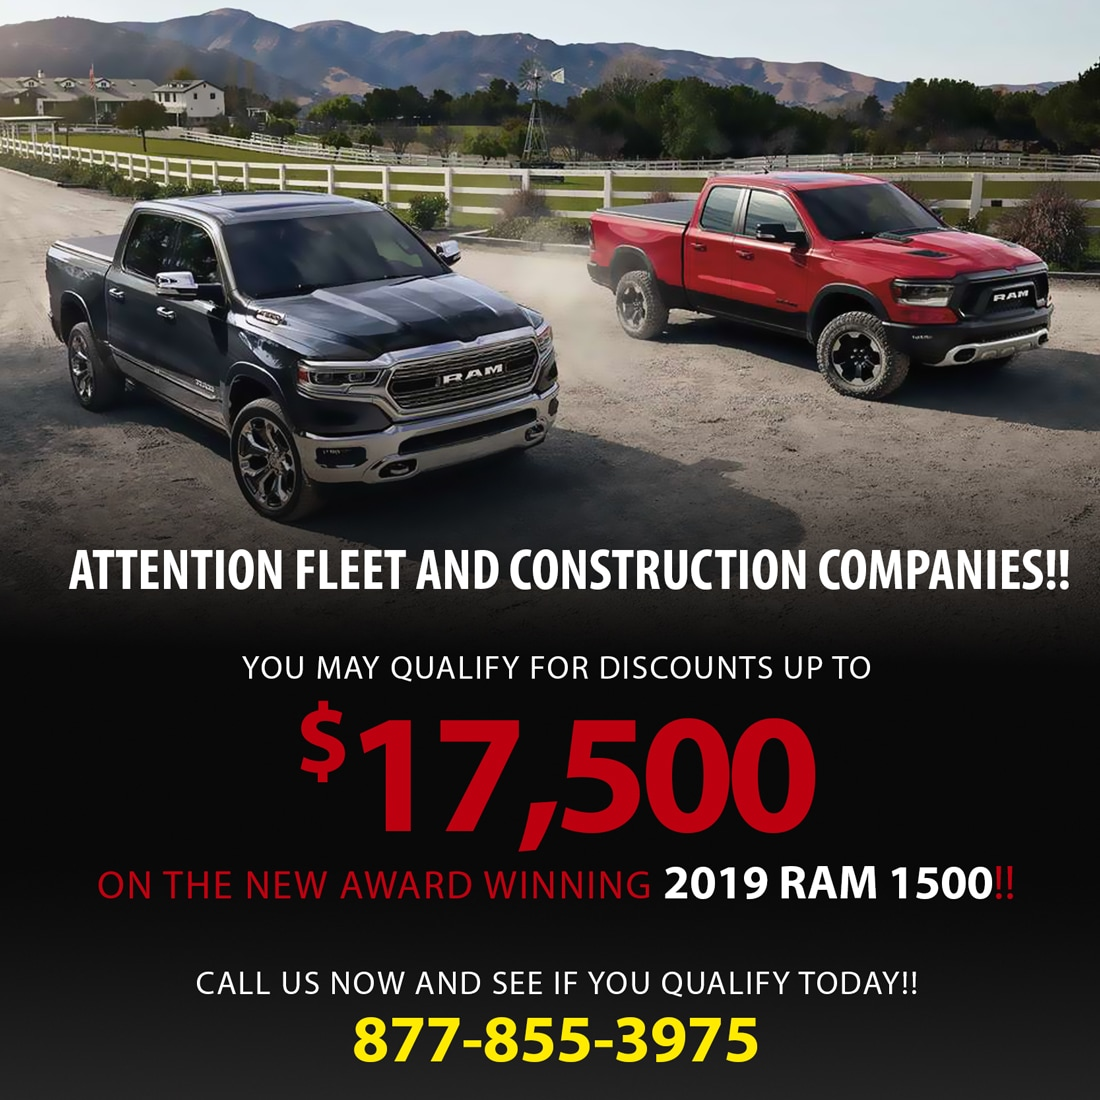 Dodge Dealer In Cookeville Tn: Chrysler And Affiliate Employee Pricing